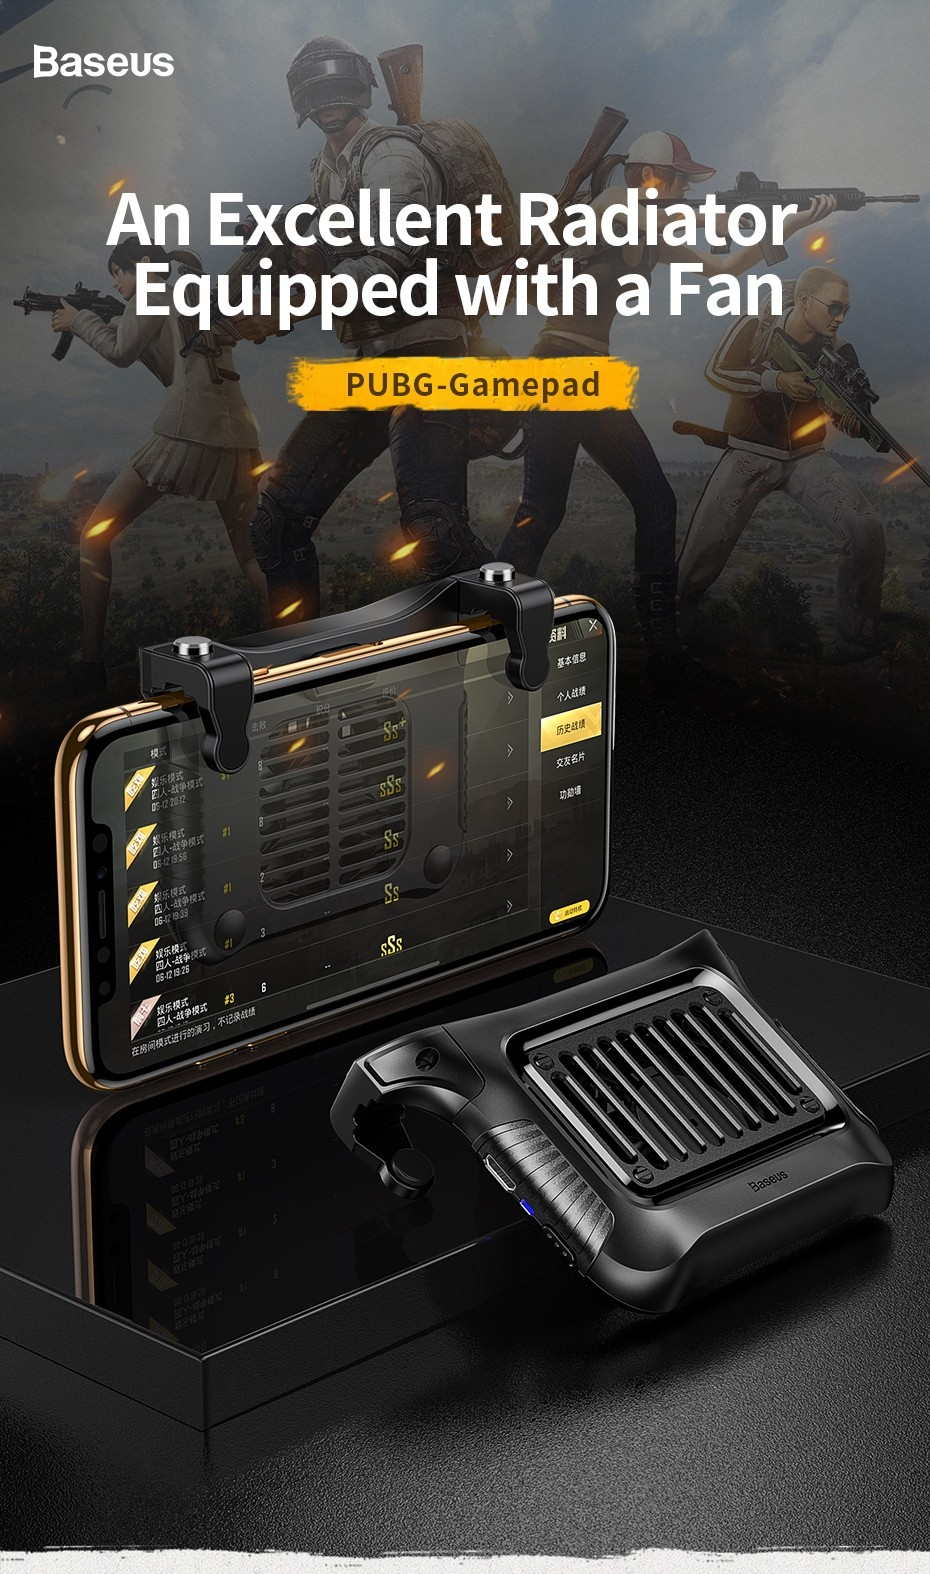 Baseus Winner Cooling Heat Sink Pubg Gampad (2)